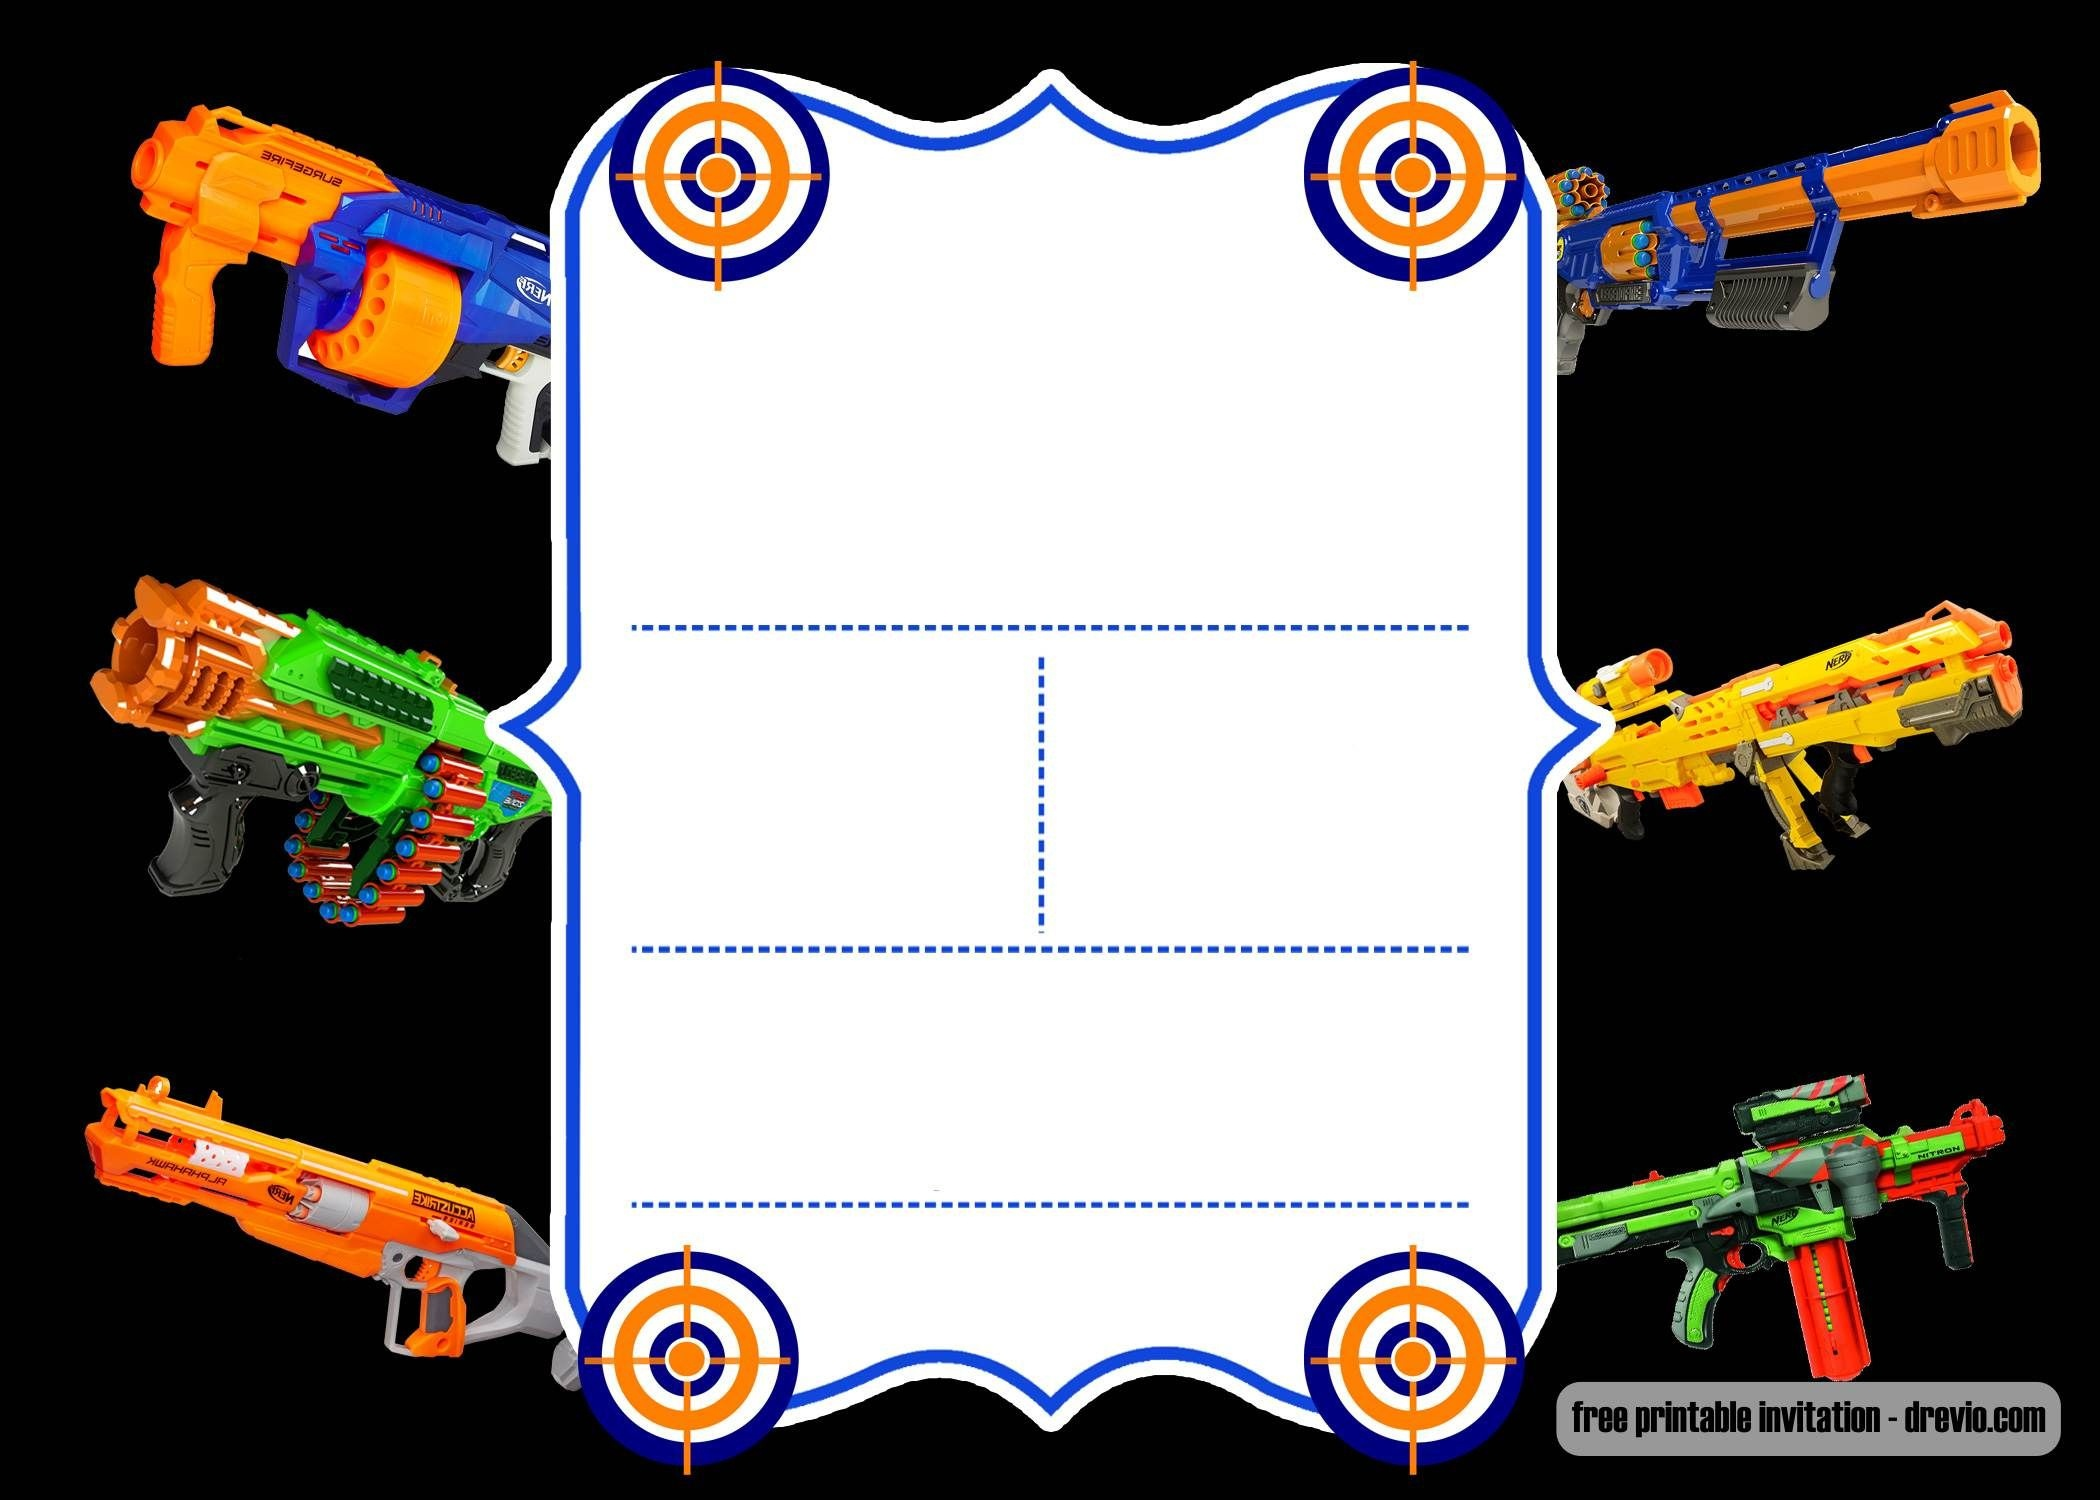 Free Printable Nerf Invitation Template - New | Free Printable - Free Printable Nerf